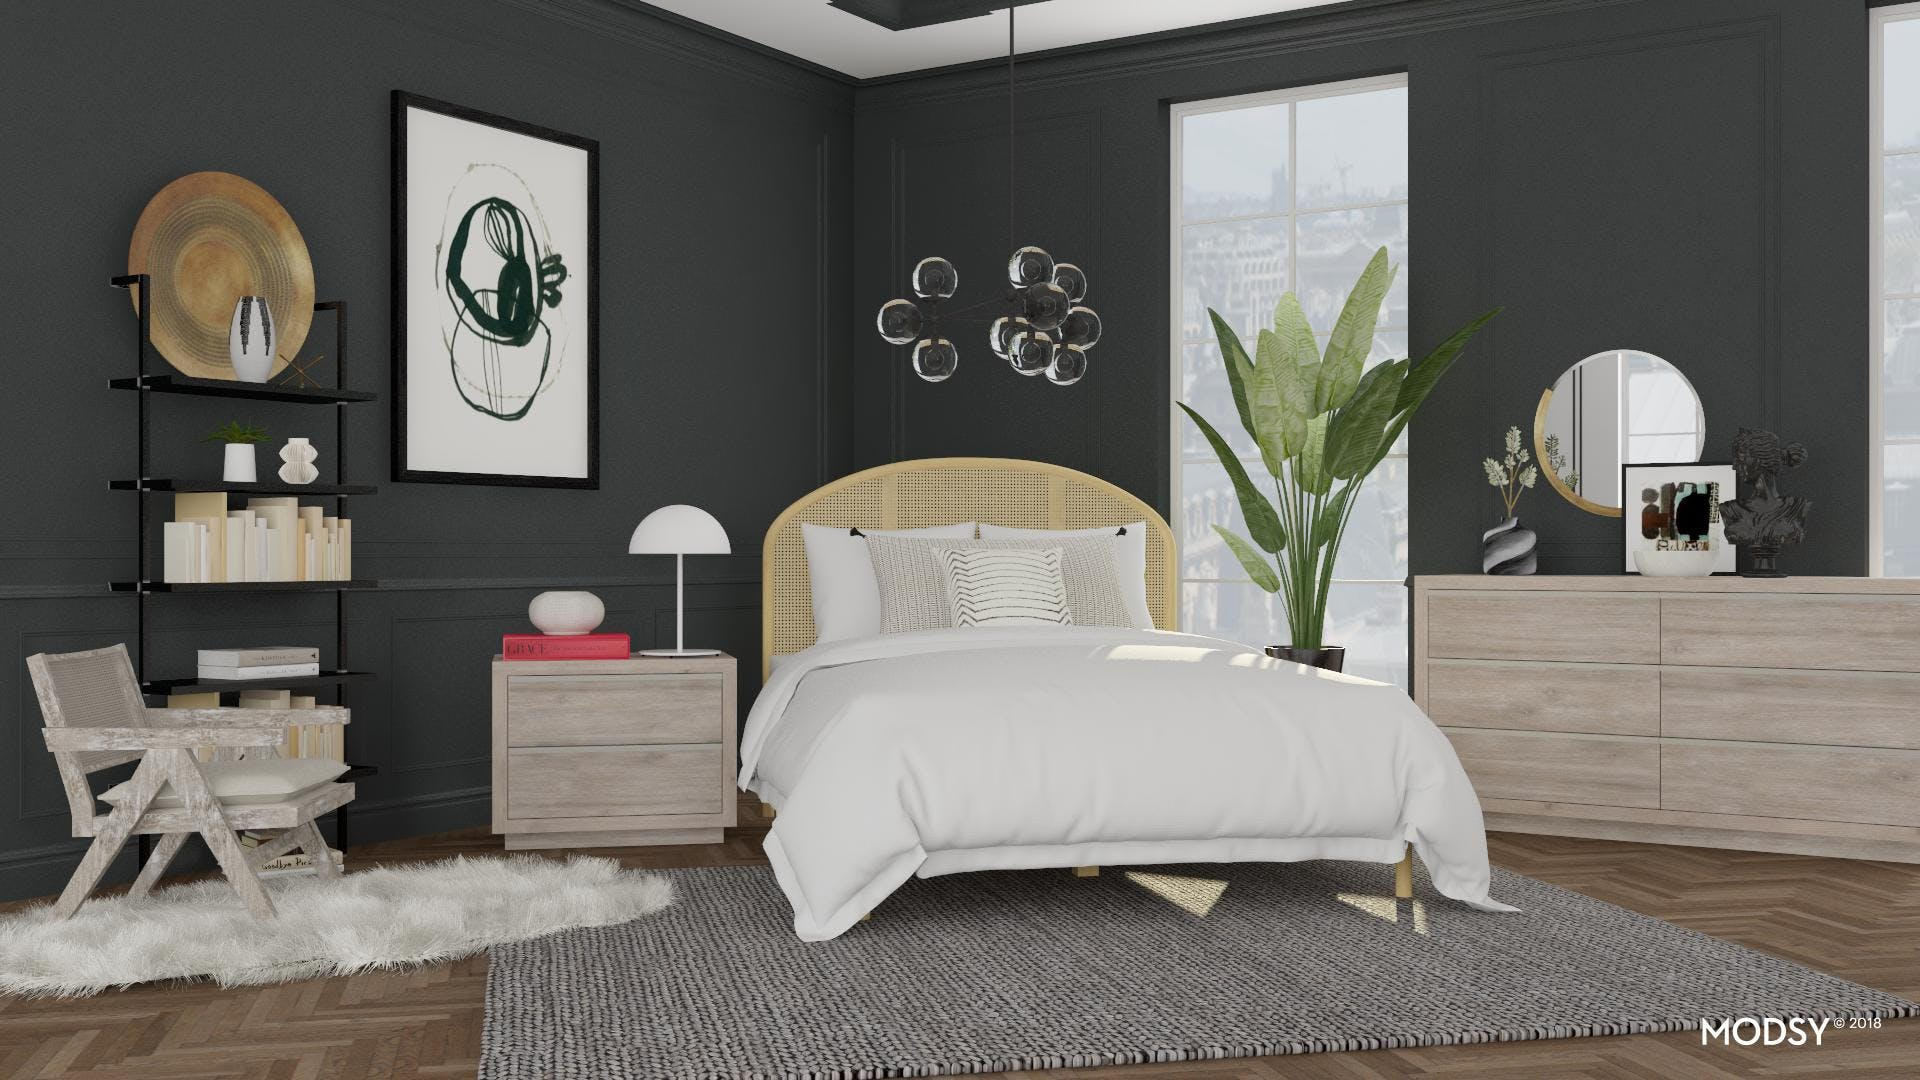 A Bedroom In Grayscale